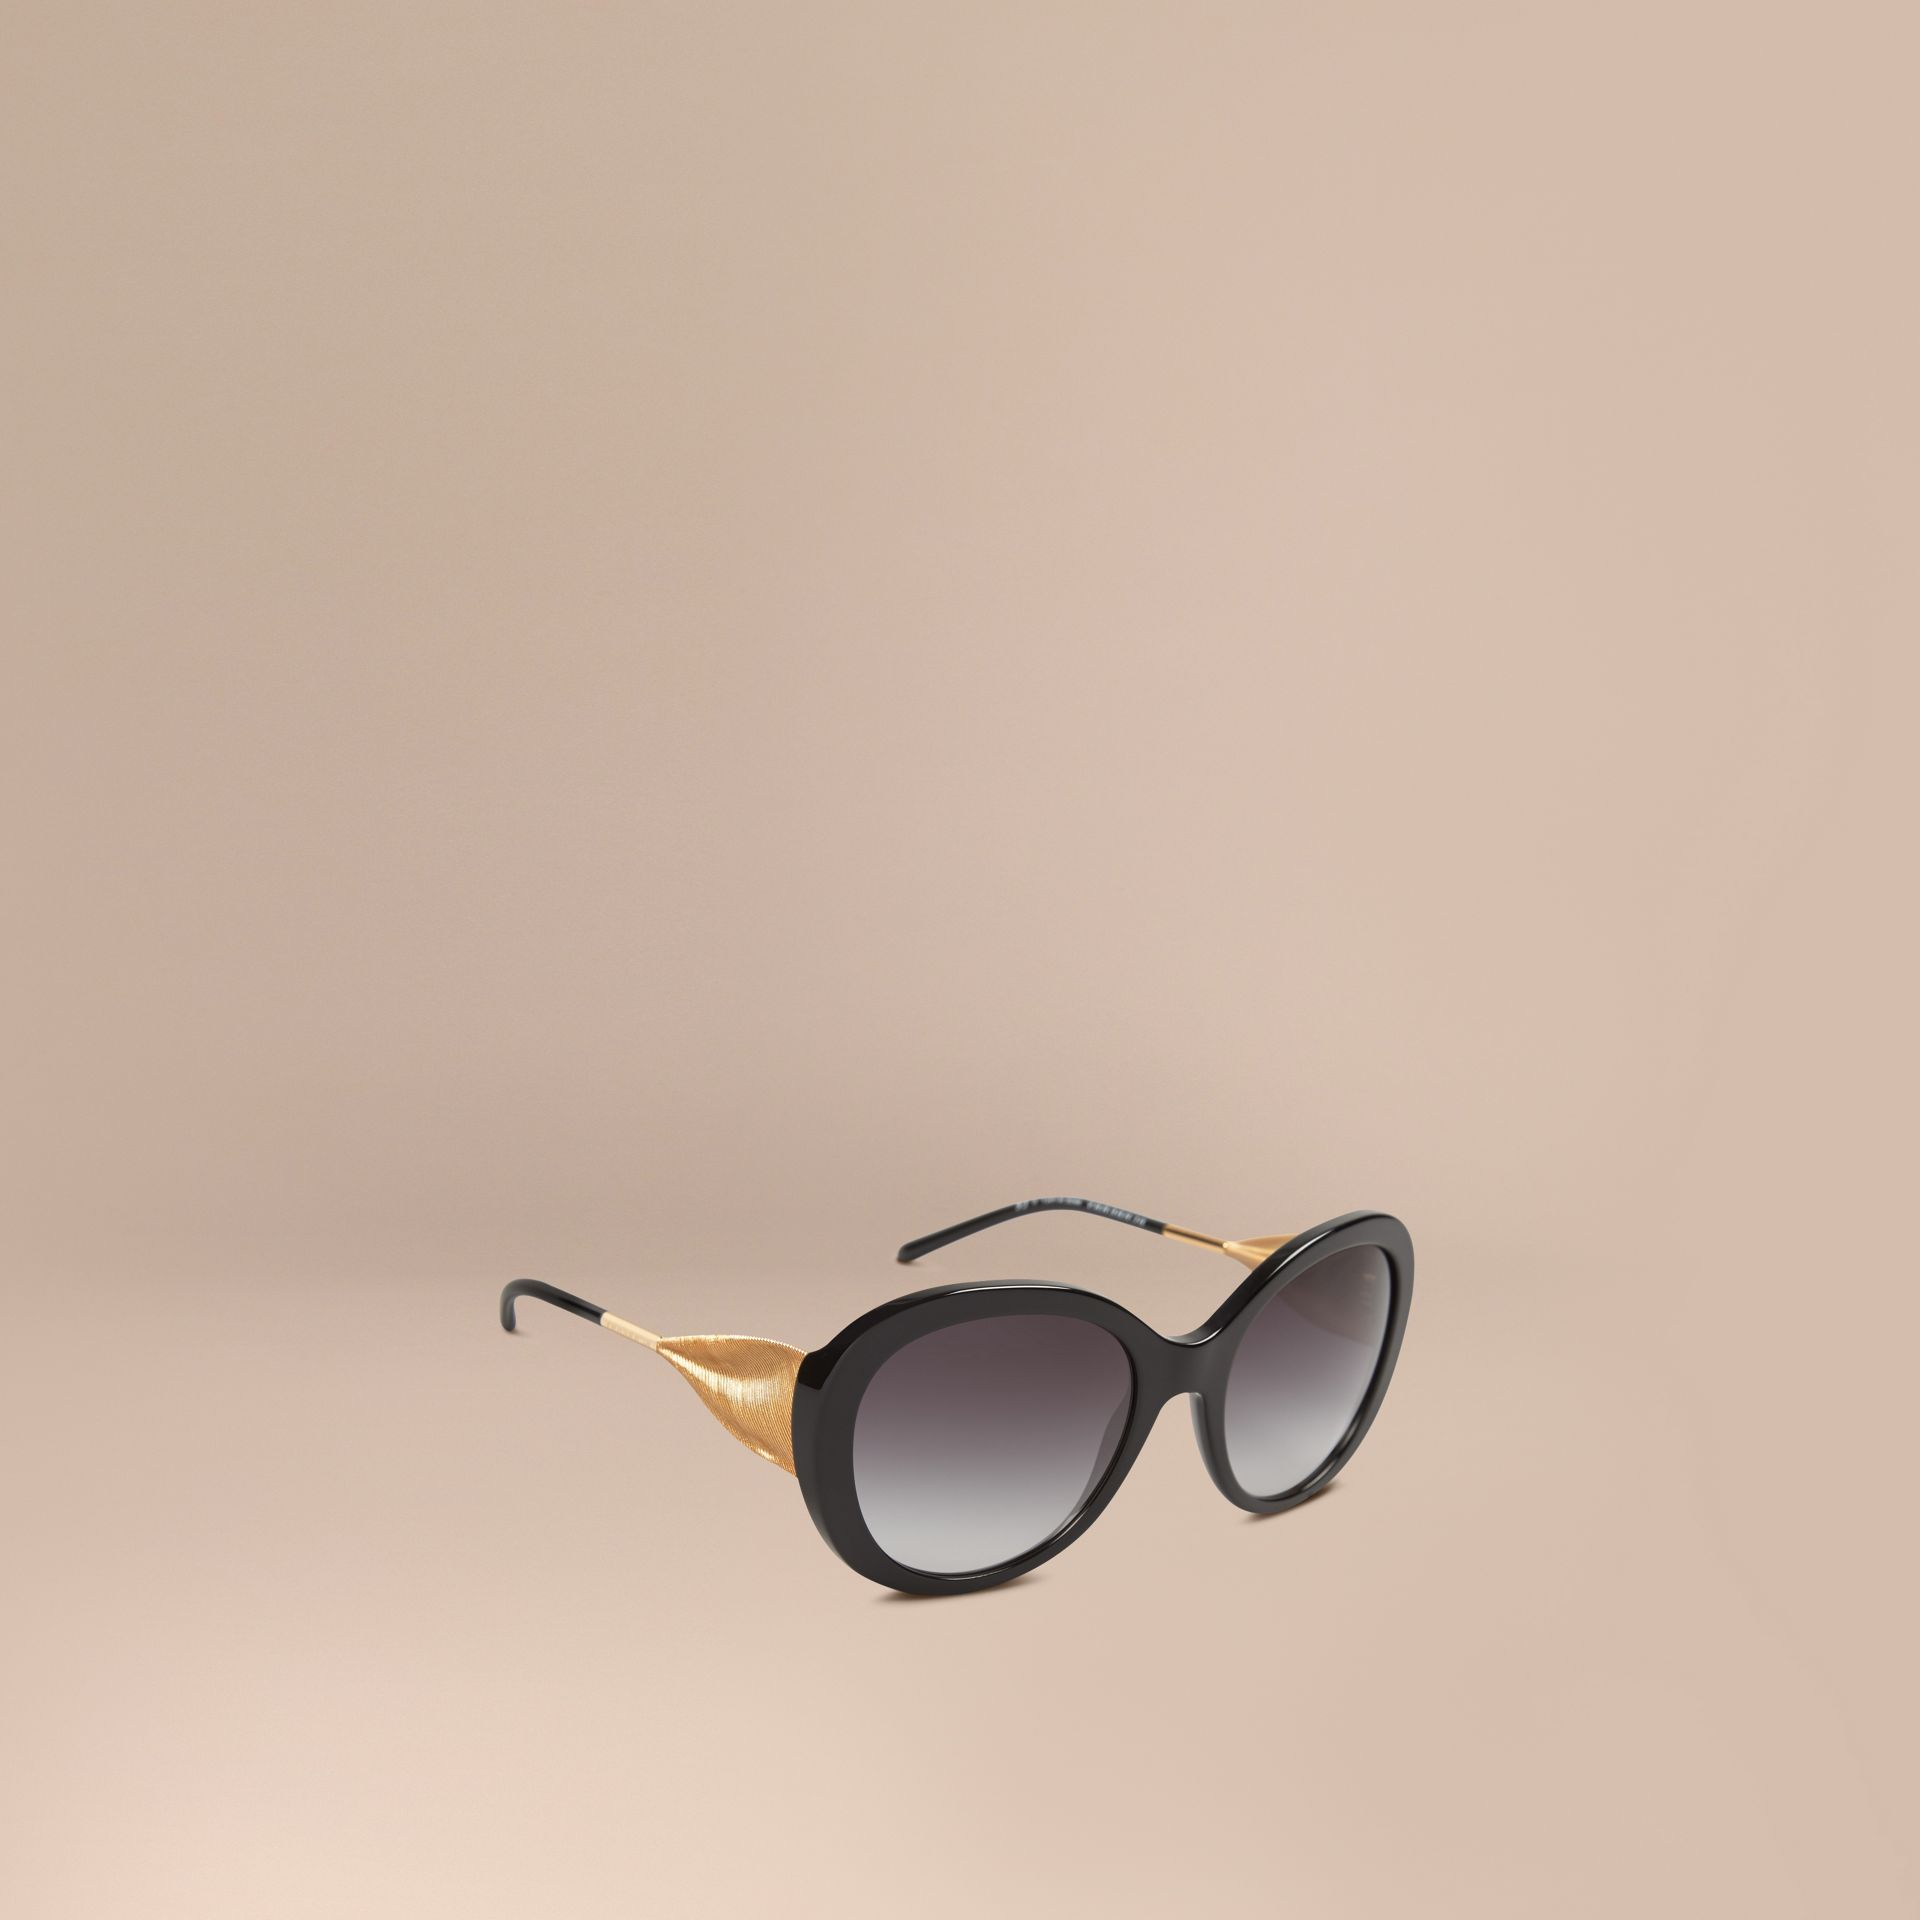 Gabardine Collection Oversize Round Frame Sunglasses in Black - Women | Burberry - gallery image 1